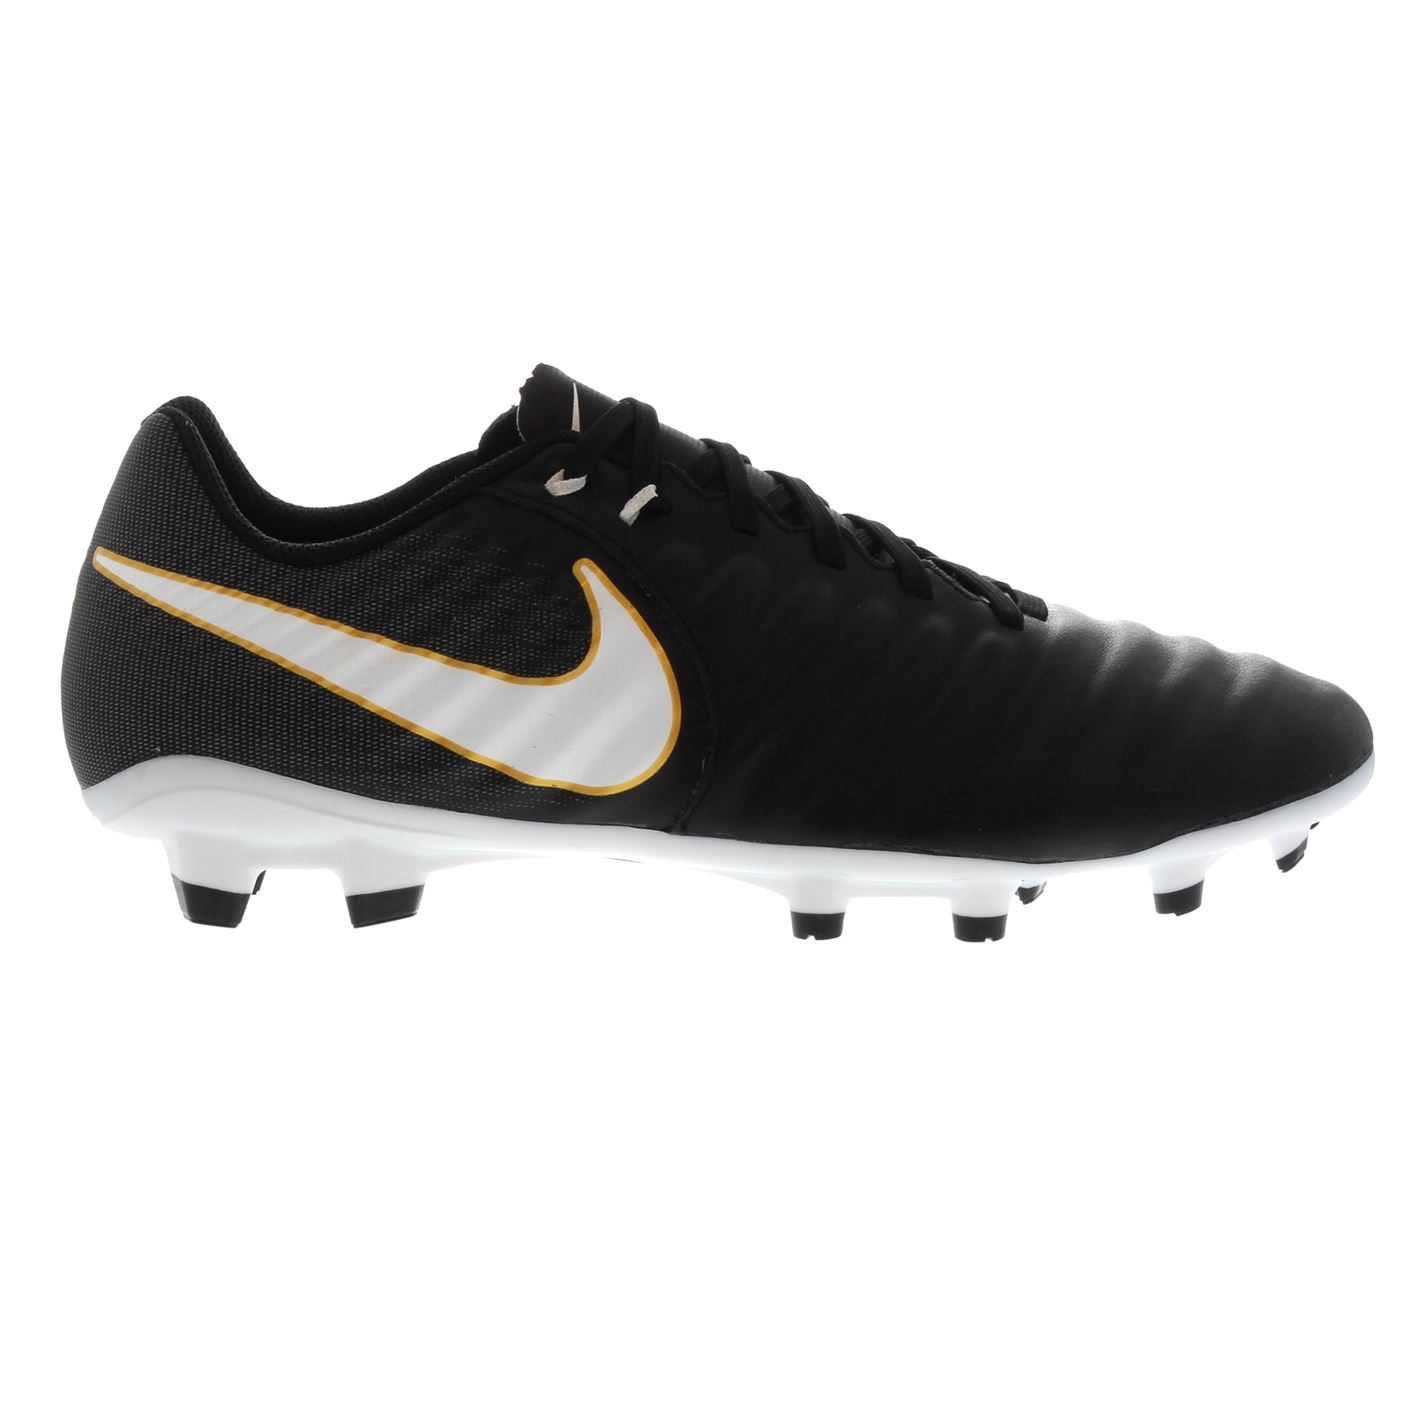 0f8c5c0f ... Nike Tiempo Ligera FG Firm Ground Football Boots Mens Black Soccer Shoes  Cleats ...